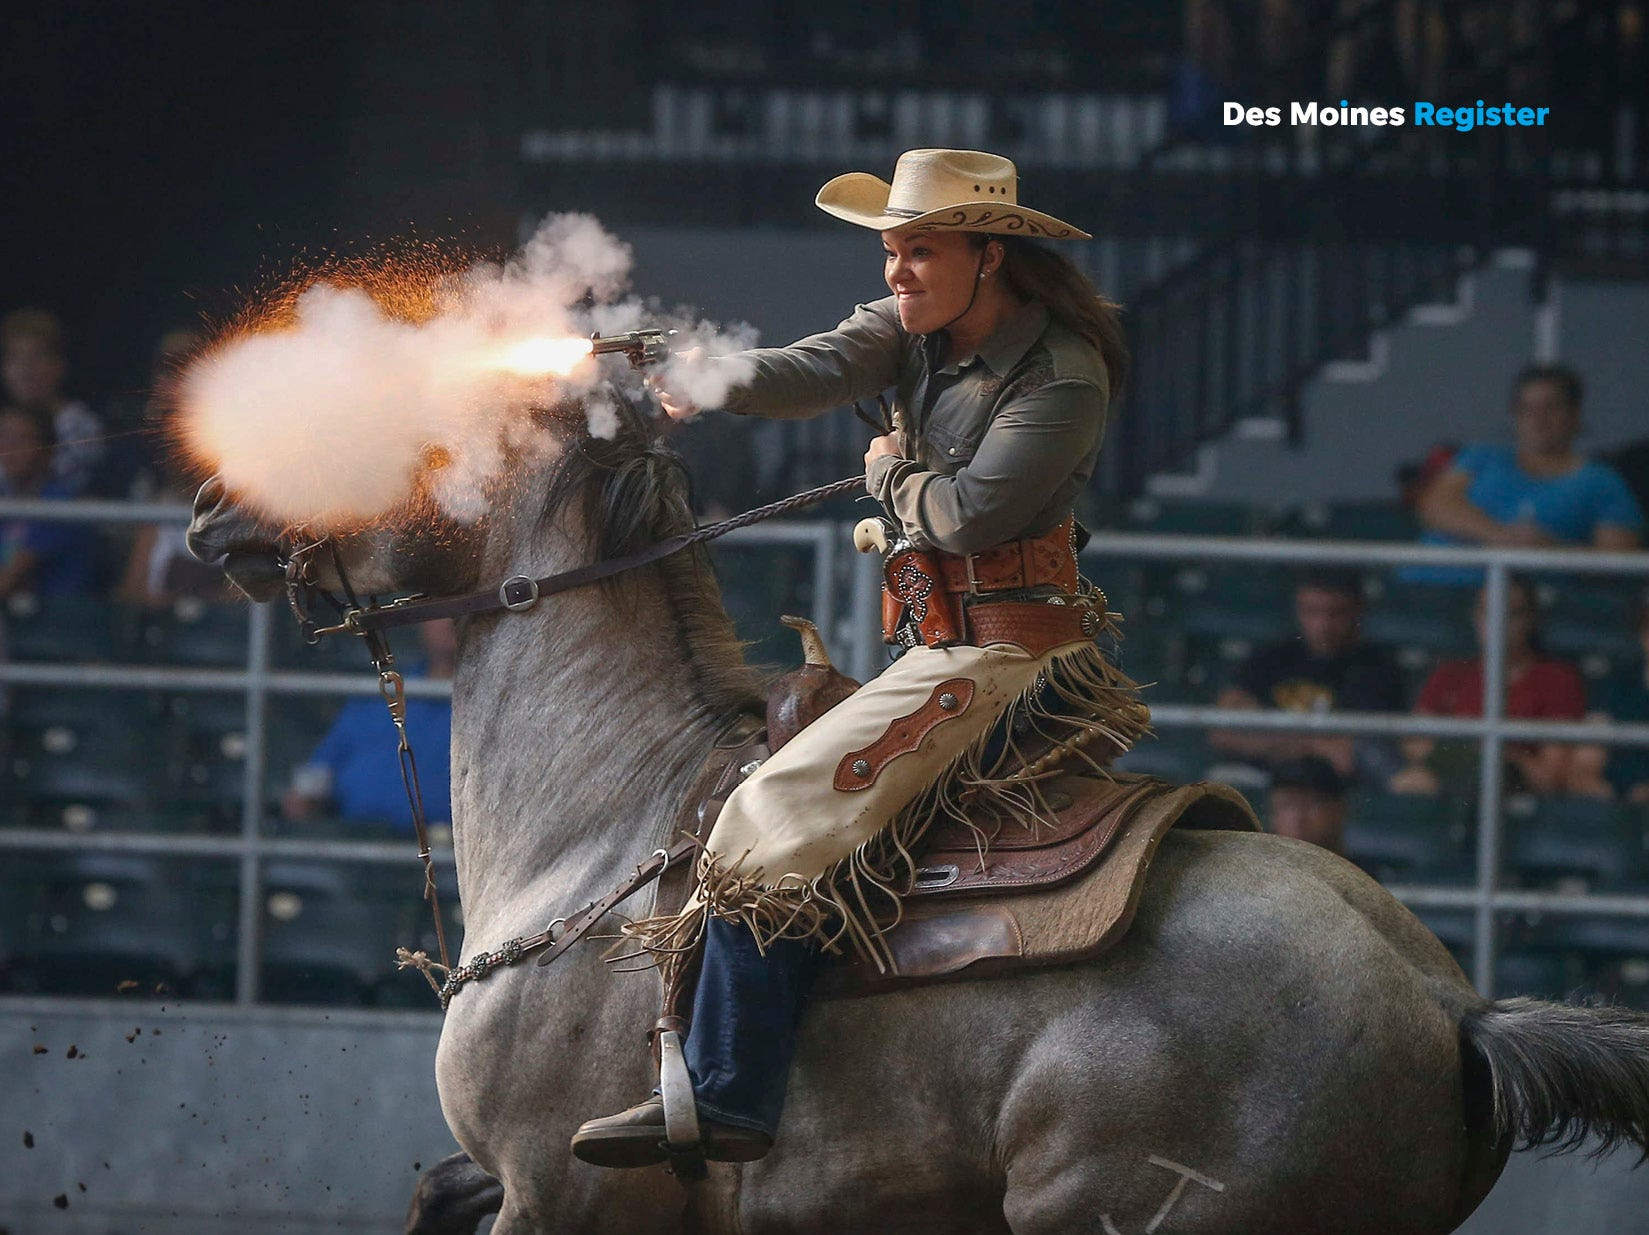 "<b> August: </b> Maddie Travis of Creston fires a shot at a balloon during the Cowboy Mounted Shooting event at the 2018 Iowa State Fair. The Register's 2019 photo calendar is available for $18 at <a href=""https://shopdmregister.com/collections/photo-gifts/products/2019-des-moines-register-photo-calendar?utm_source=desmoinesregister&utm_medium=link&utm_campaign=launch_gallery"" target=""_blank"">ShopDMRegister.com. </a>"